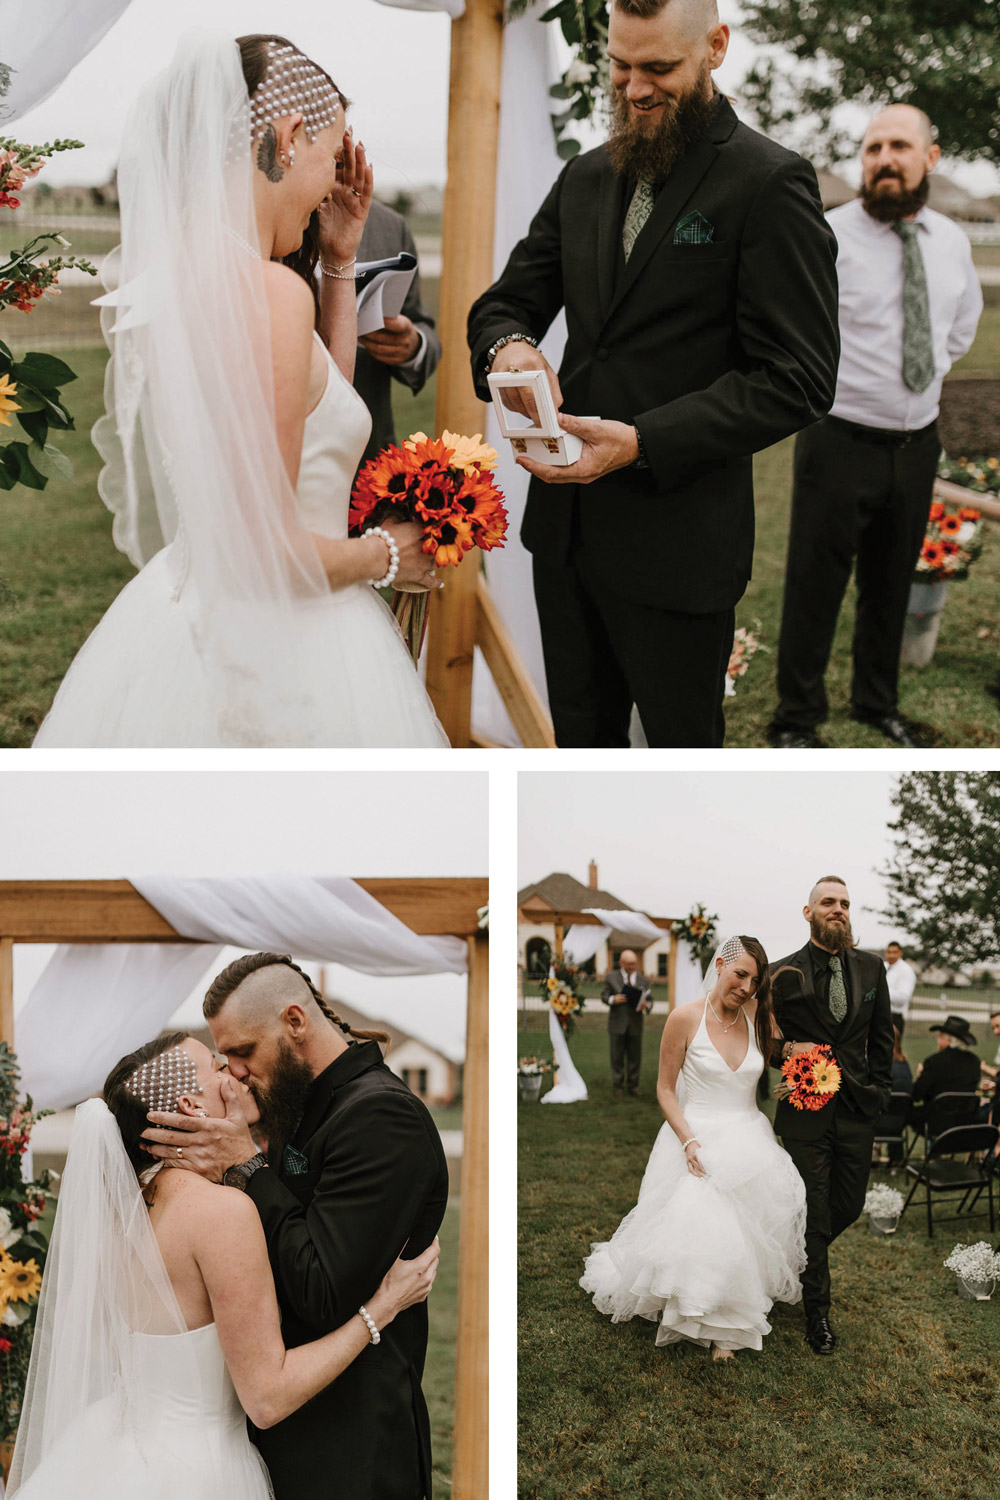 epic alternative backyard elopement wedding for edgy couple